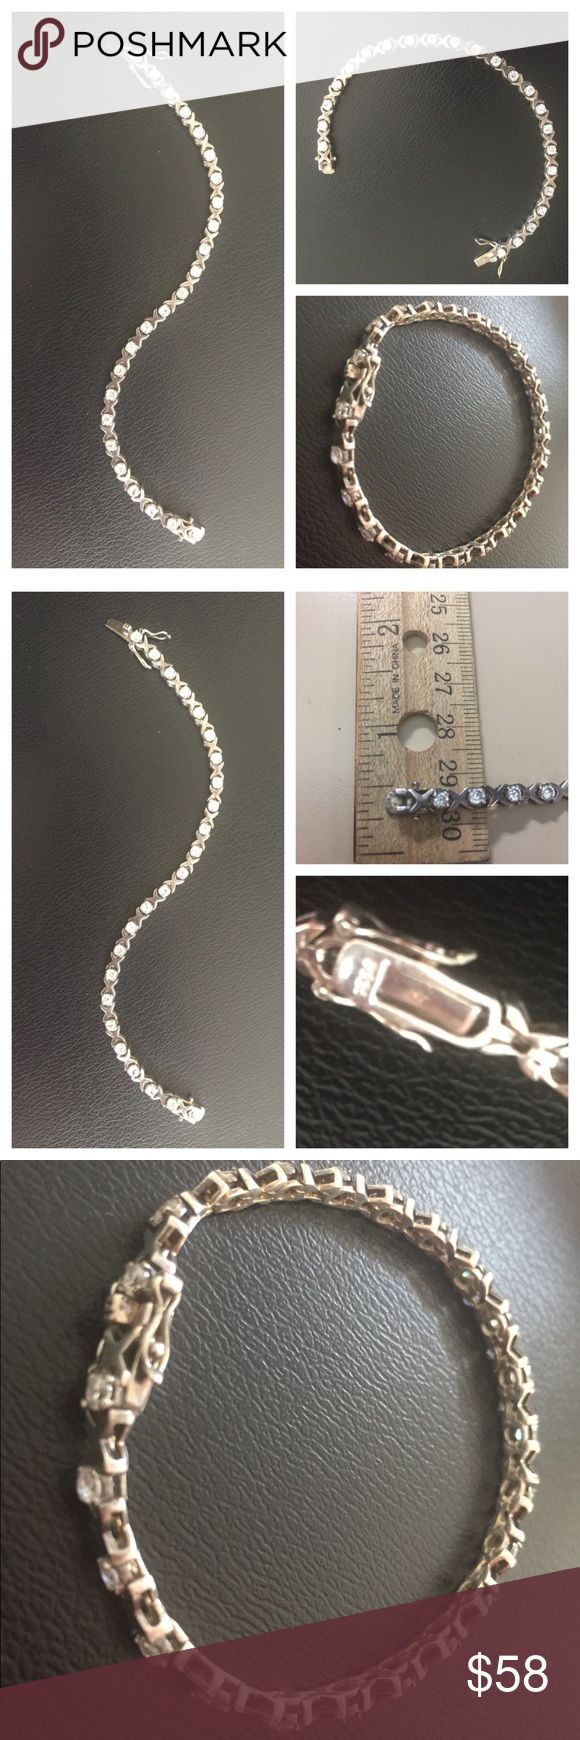 """Vintage 925 Sterling Silver Tennis Bracelet Beautiful stamped 925 Sterling Silver Tennis Bracelet featuring round cubic zirconia's in an X and O setting. Push-in double safety latch closure. Measures 7"""". In excellent preowned vintage condition. No missing stones and no issues. Vintage Jewelry Bracelets"""